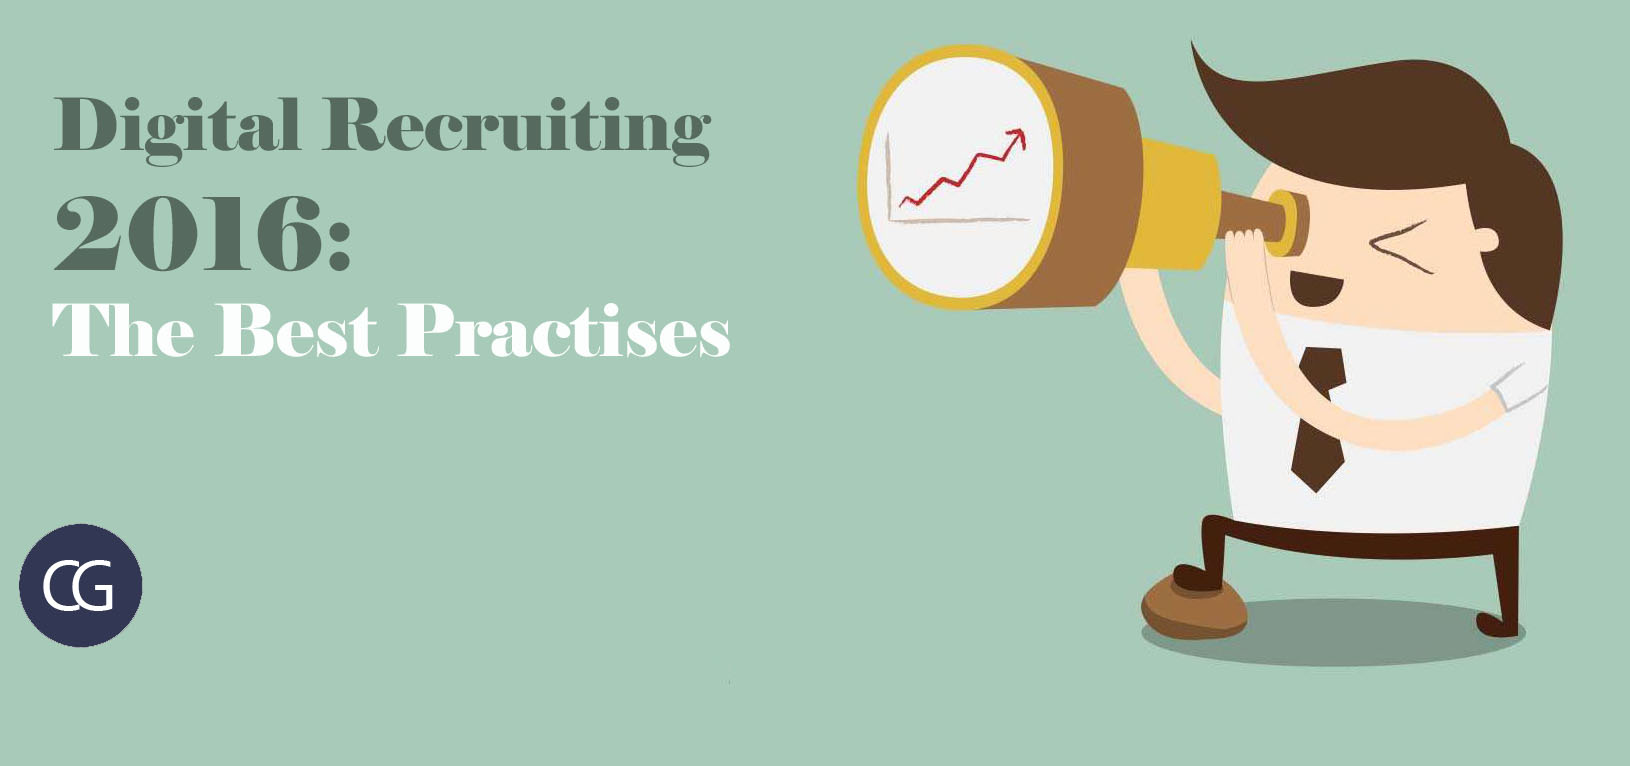 Digital Recruiting 2016: The Best Practises